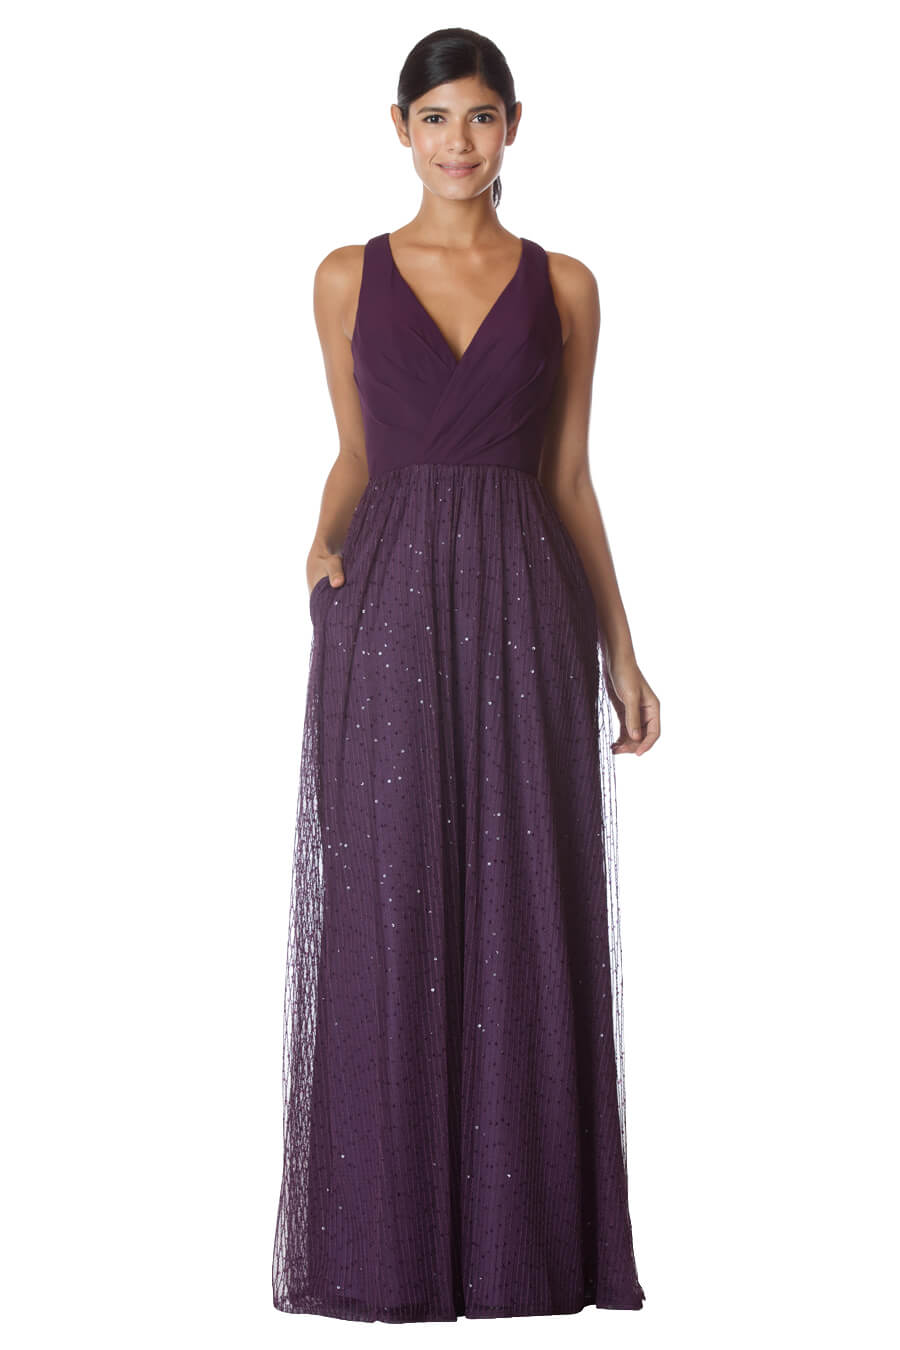 STYLE: 1759 (available short 1759-s) | Bridesmaid Dresses, Evening ...